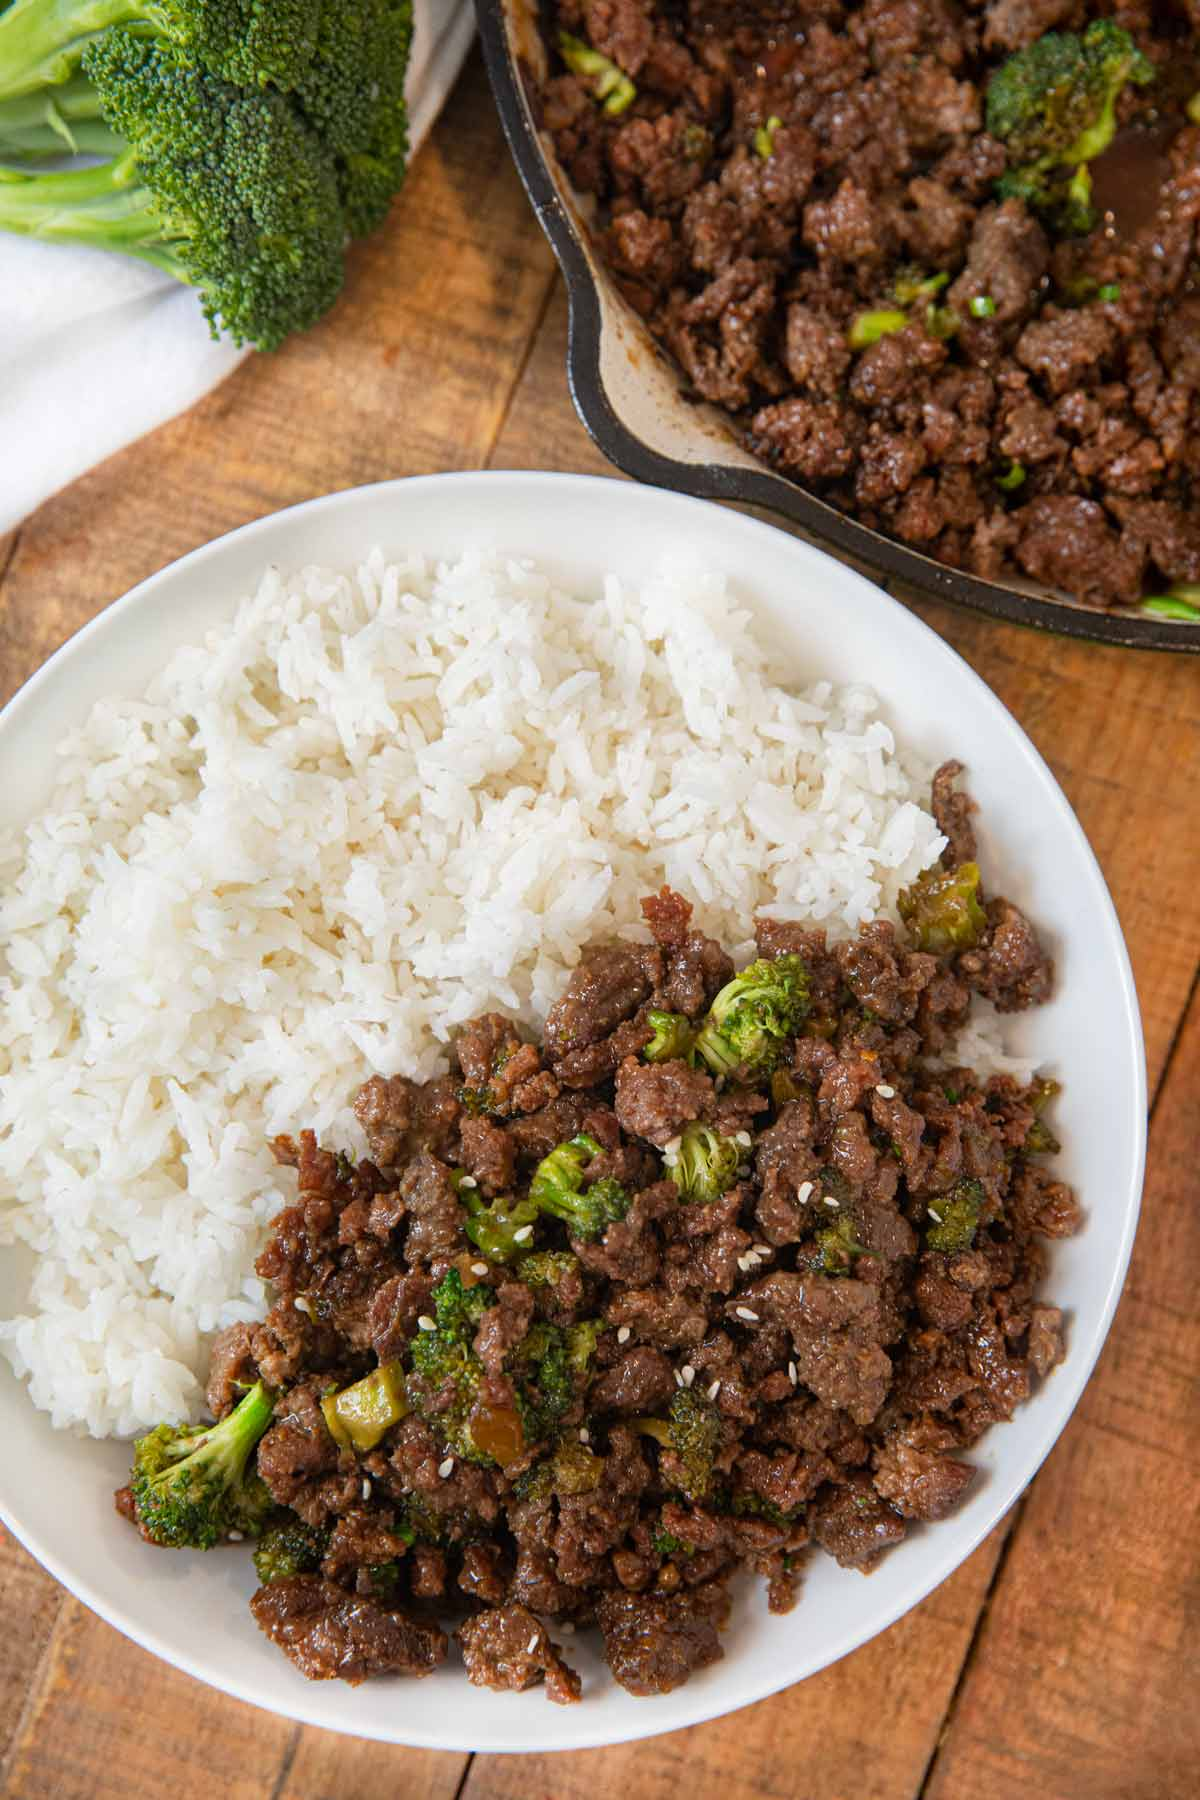 Ground Beef And Broccoli Recipe Dinner Then Dessert